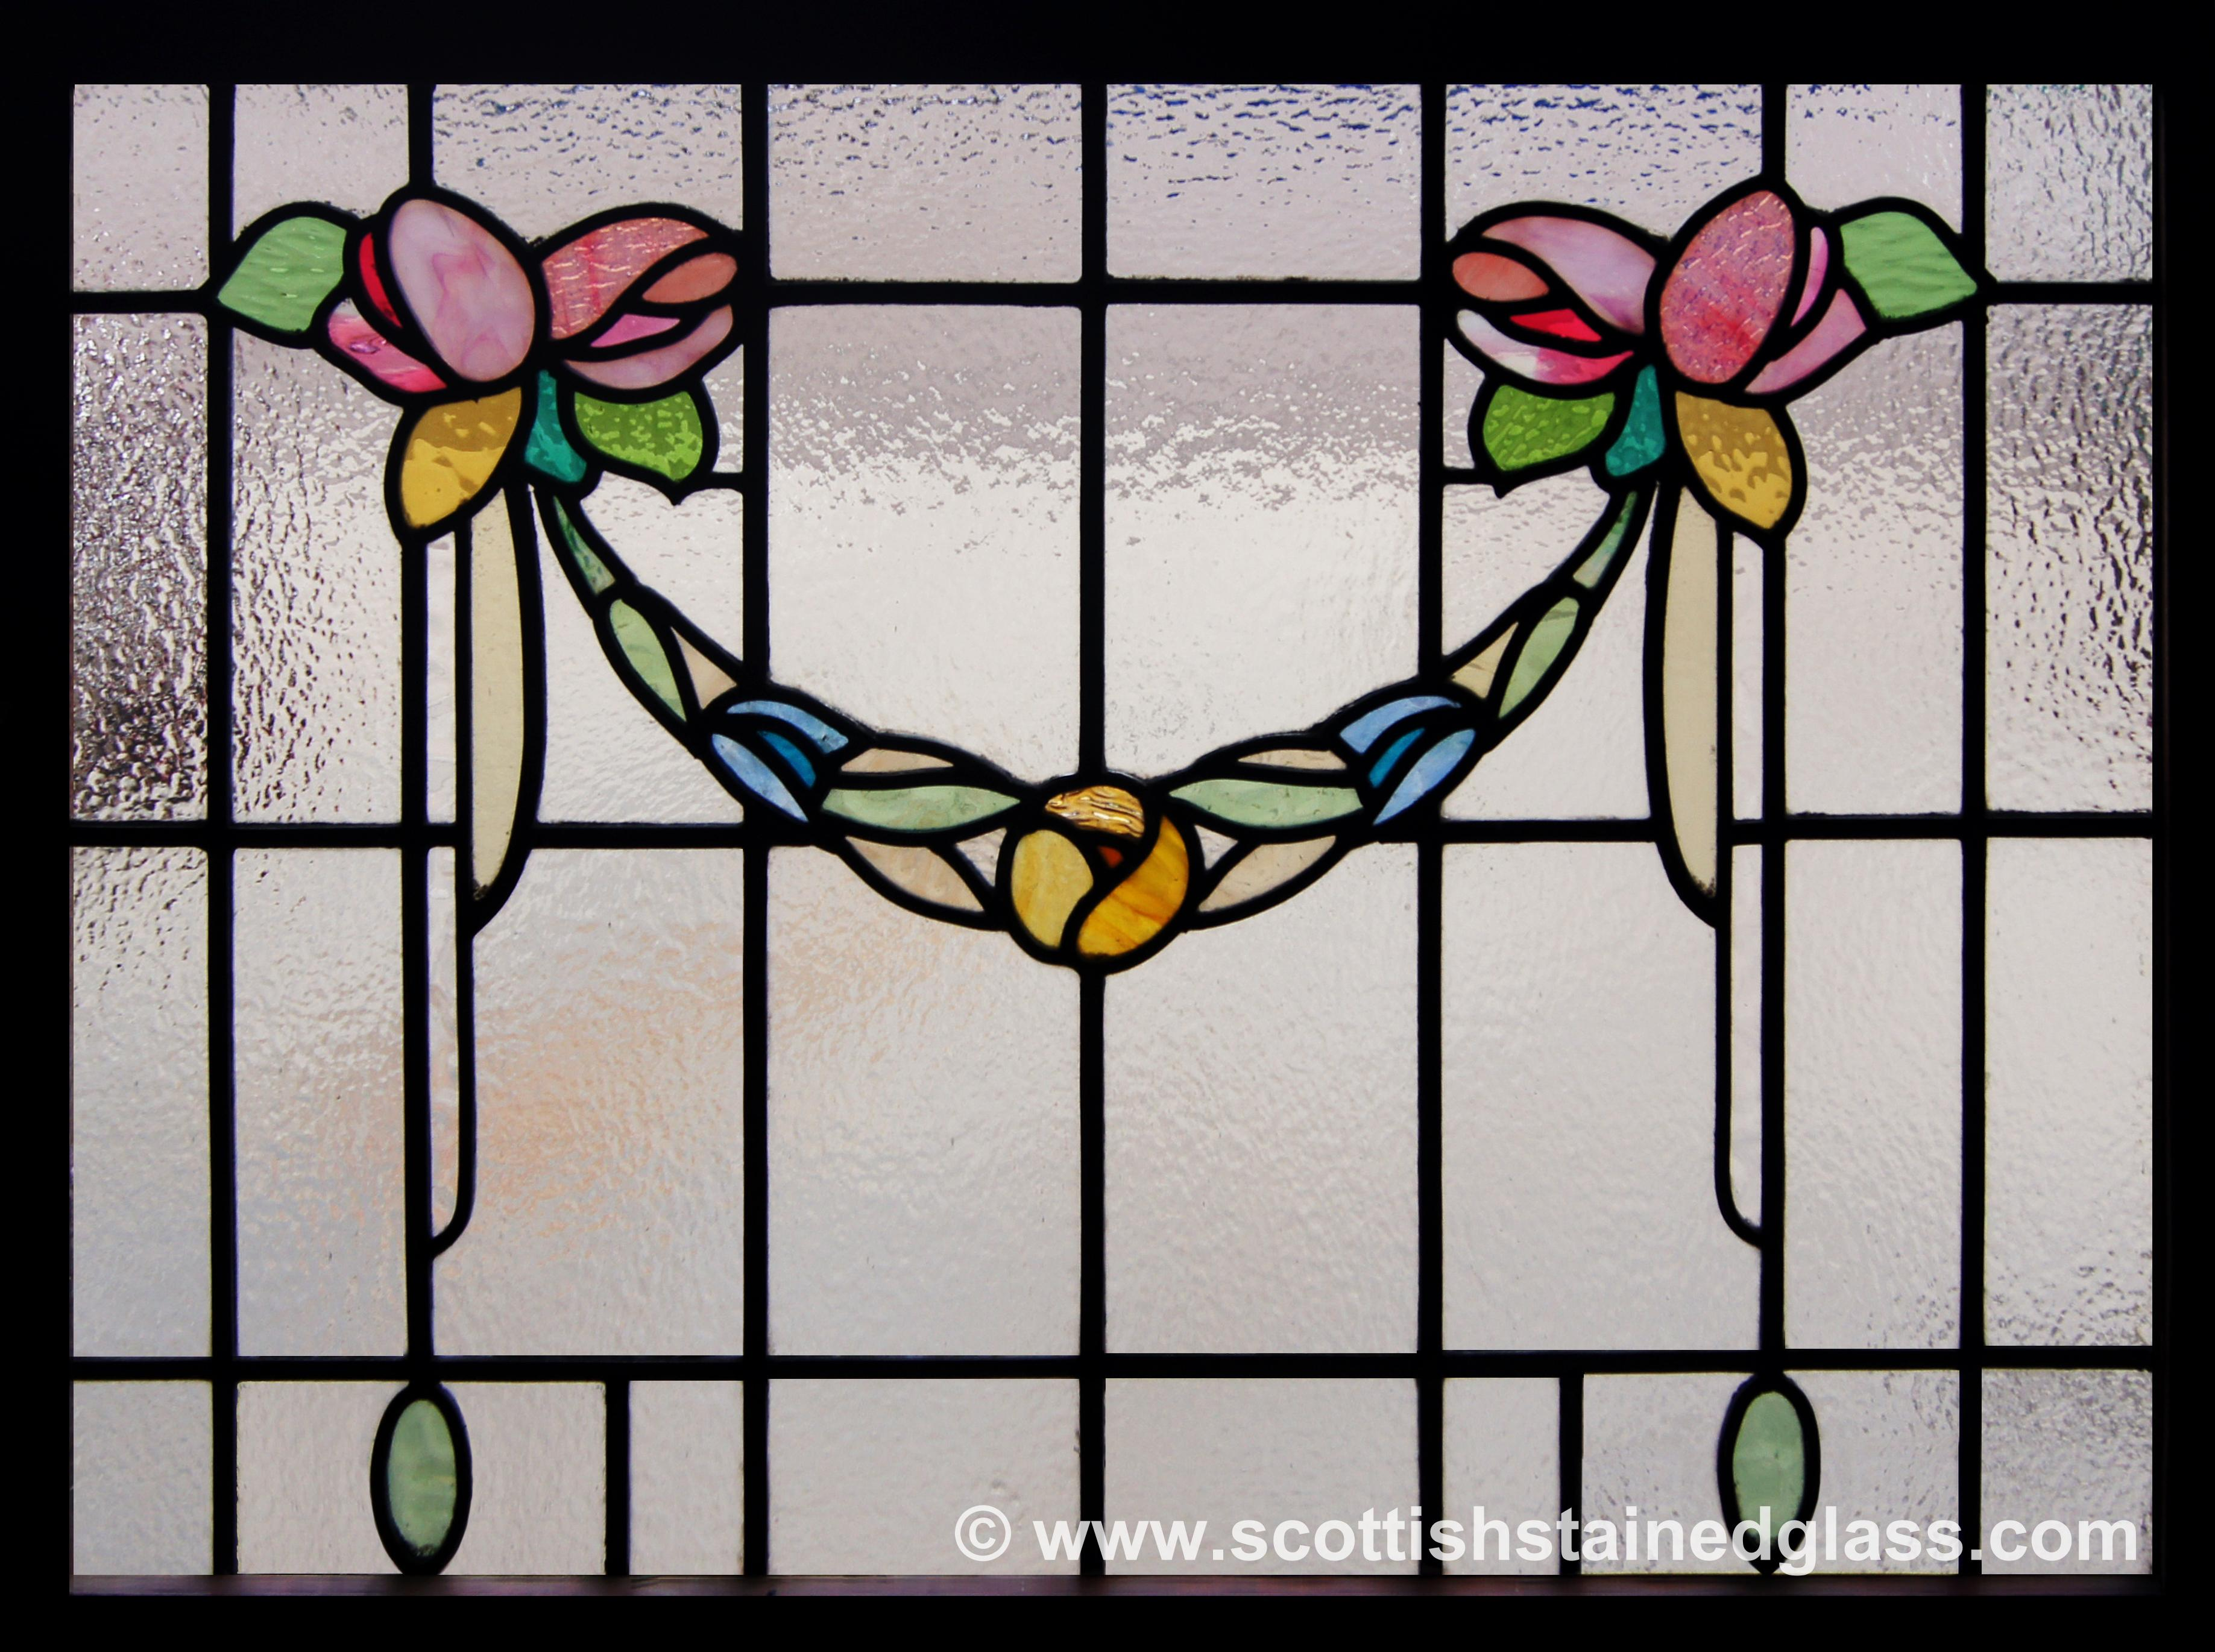 Stained Glass Repair & Restoration - Stained Glass Salt Lake City